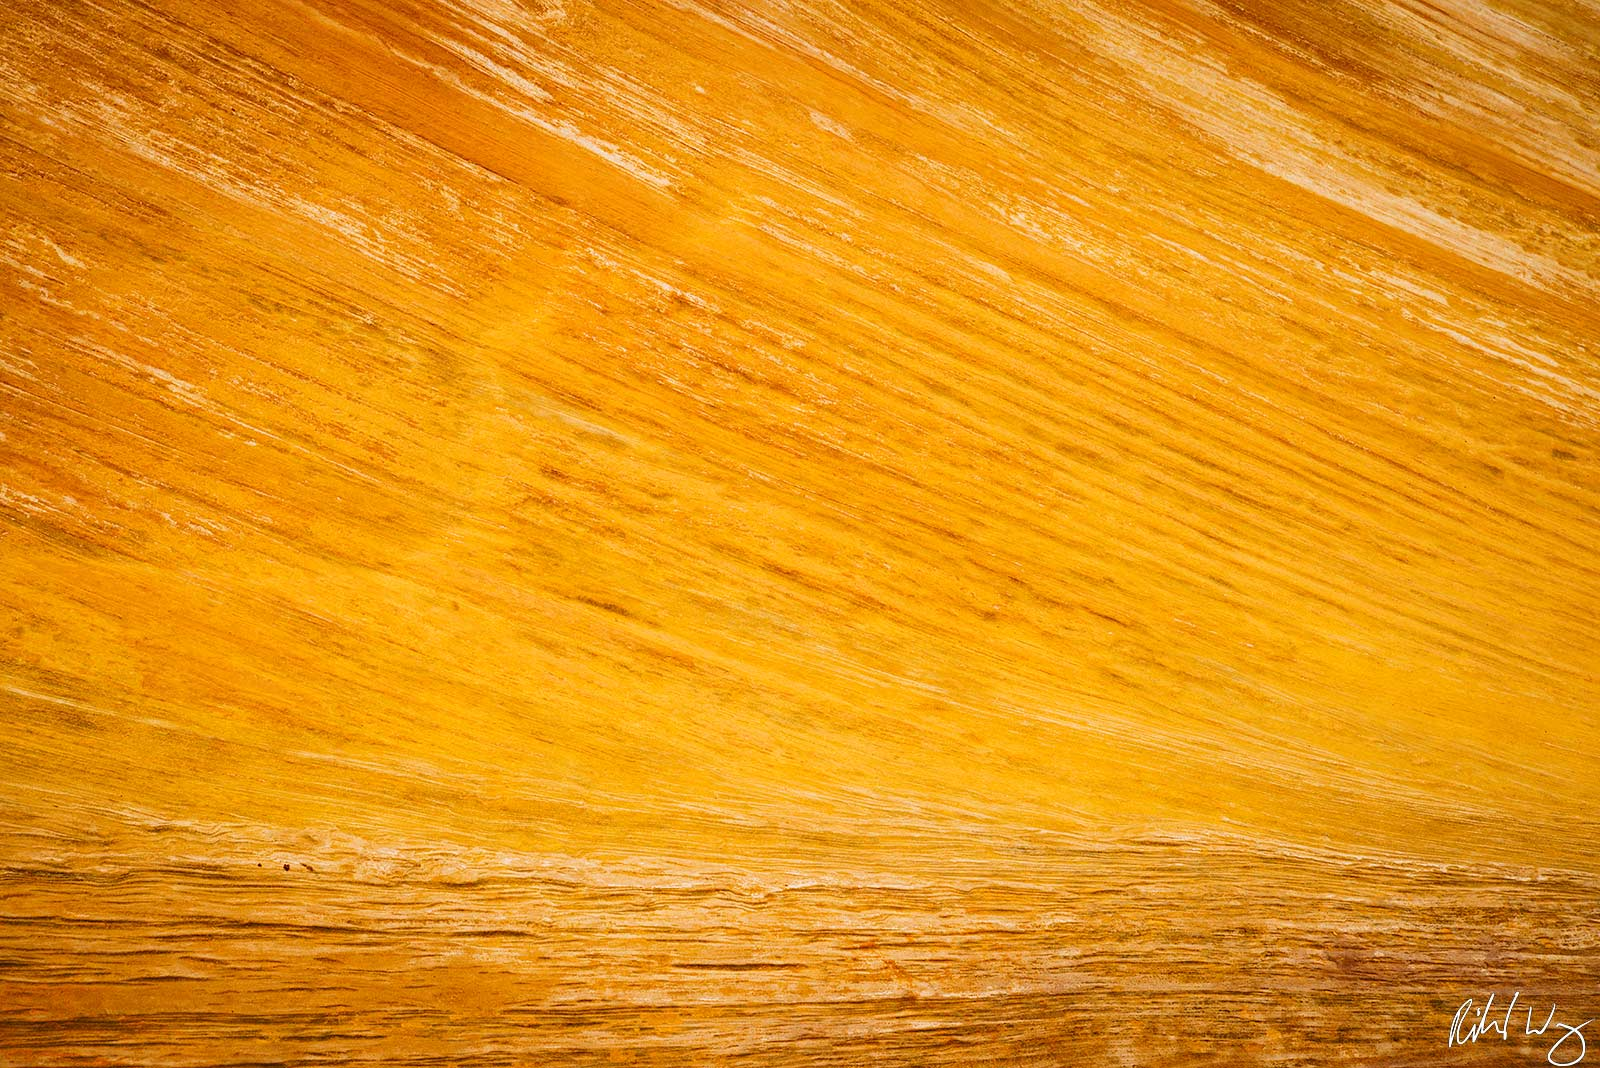 Striated Sandstone Abstract Patterns, Capitol Reef National Park Photo